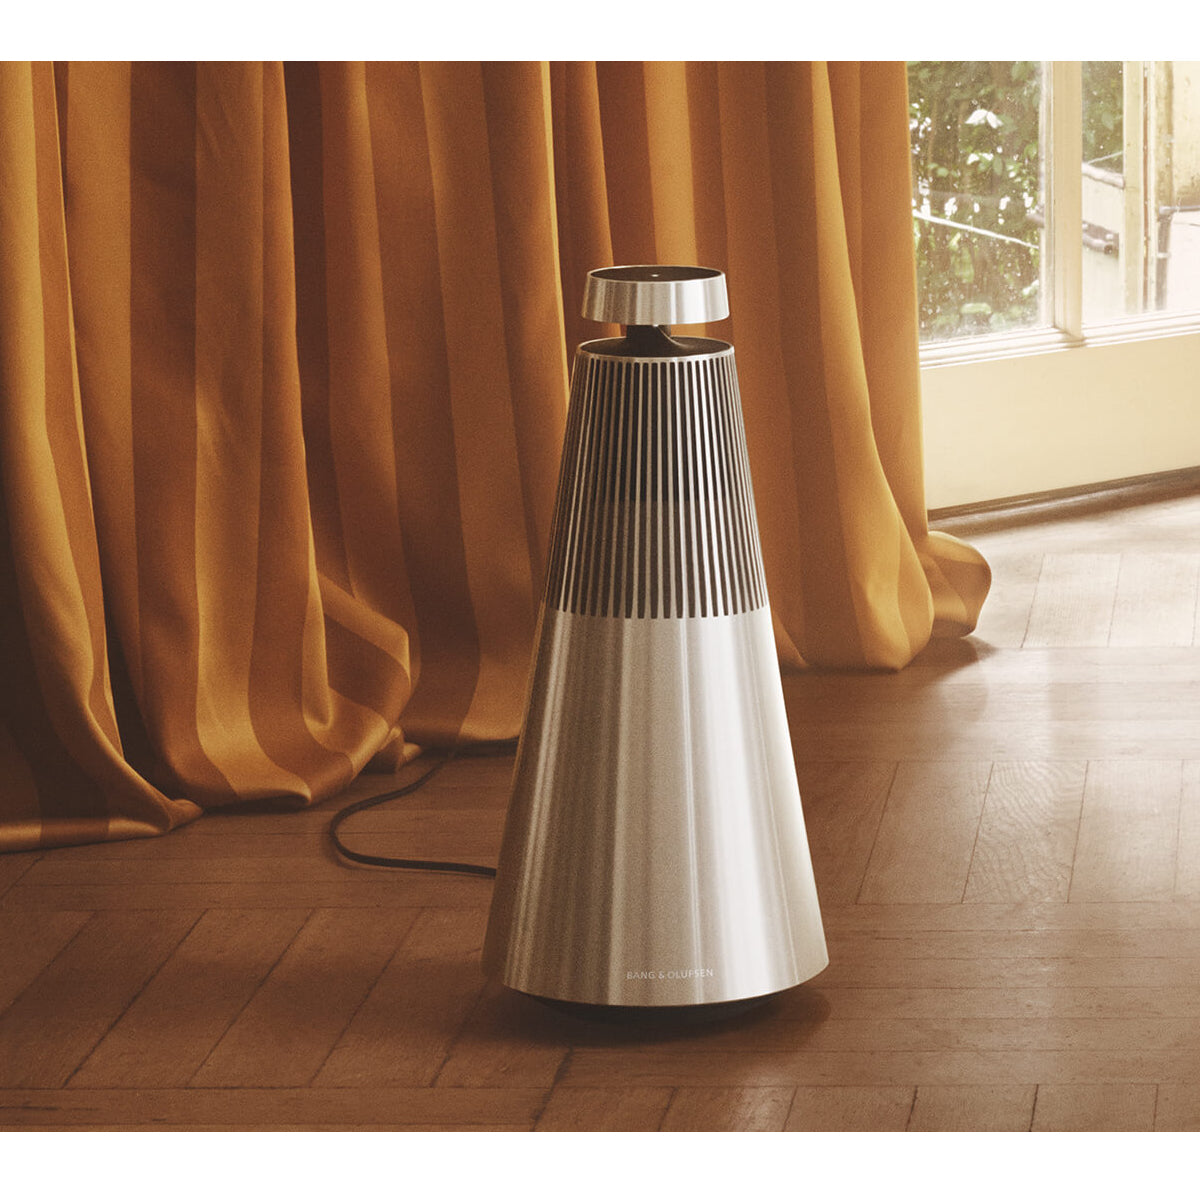 Bang & Olufsen BeoSound 2 Wireless Speaker, Bang & Olufsen, Bluetooth Wifi Speaker - AVStore.in